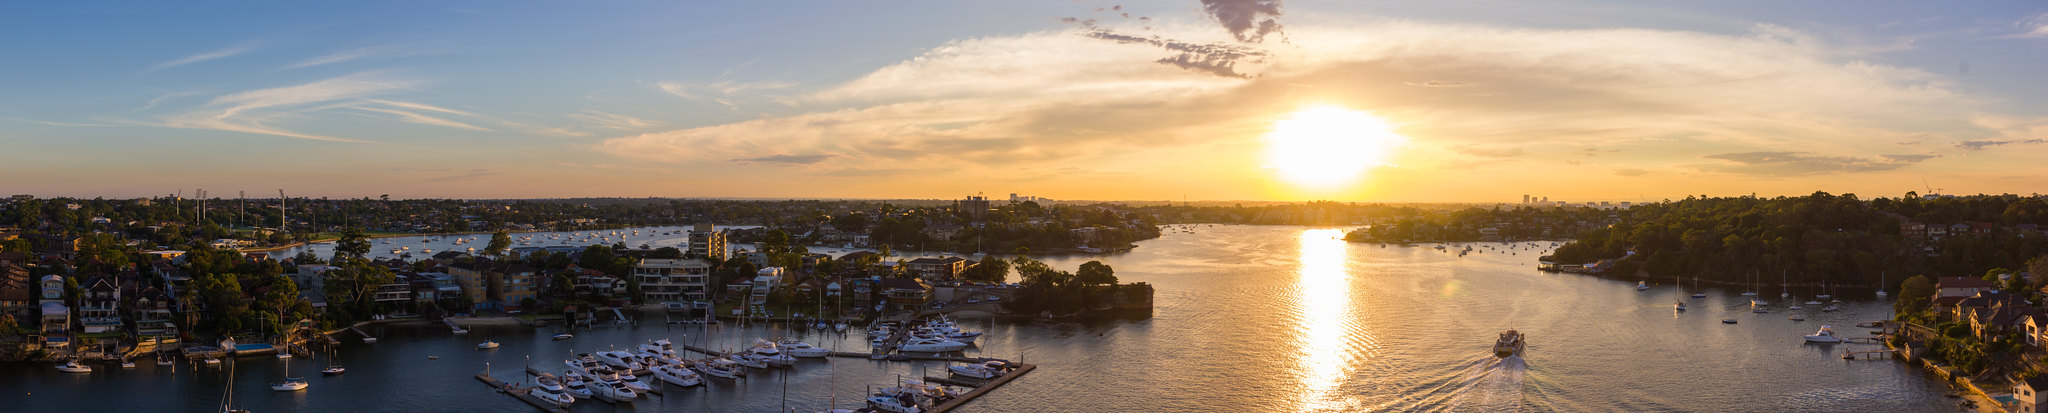 Gladesville Bridge looking west at sunset panorama